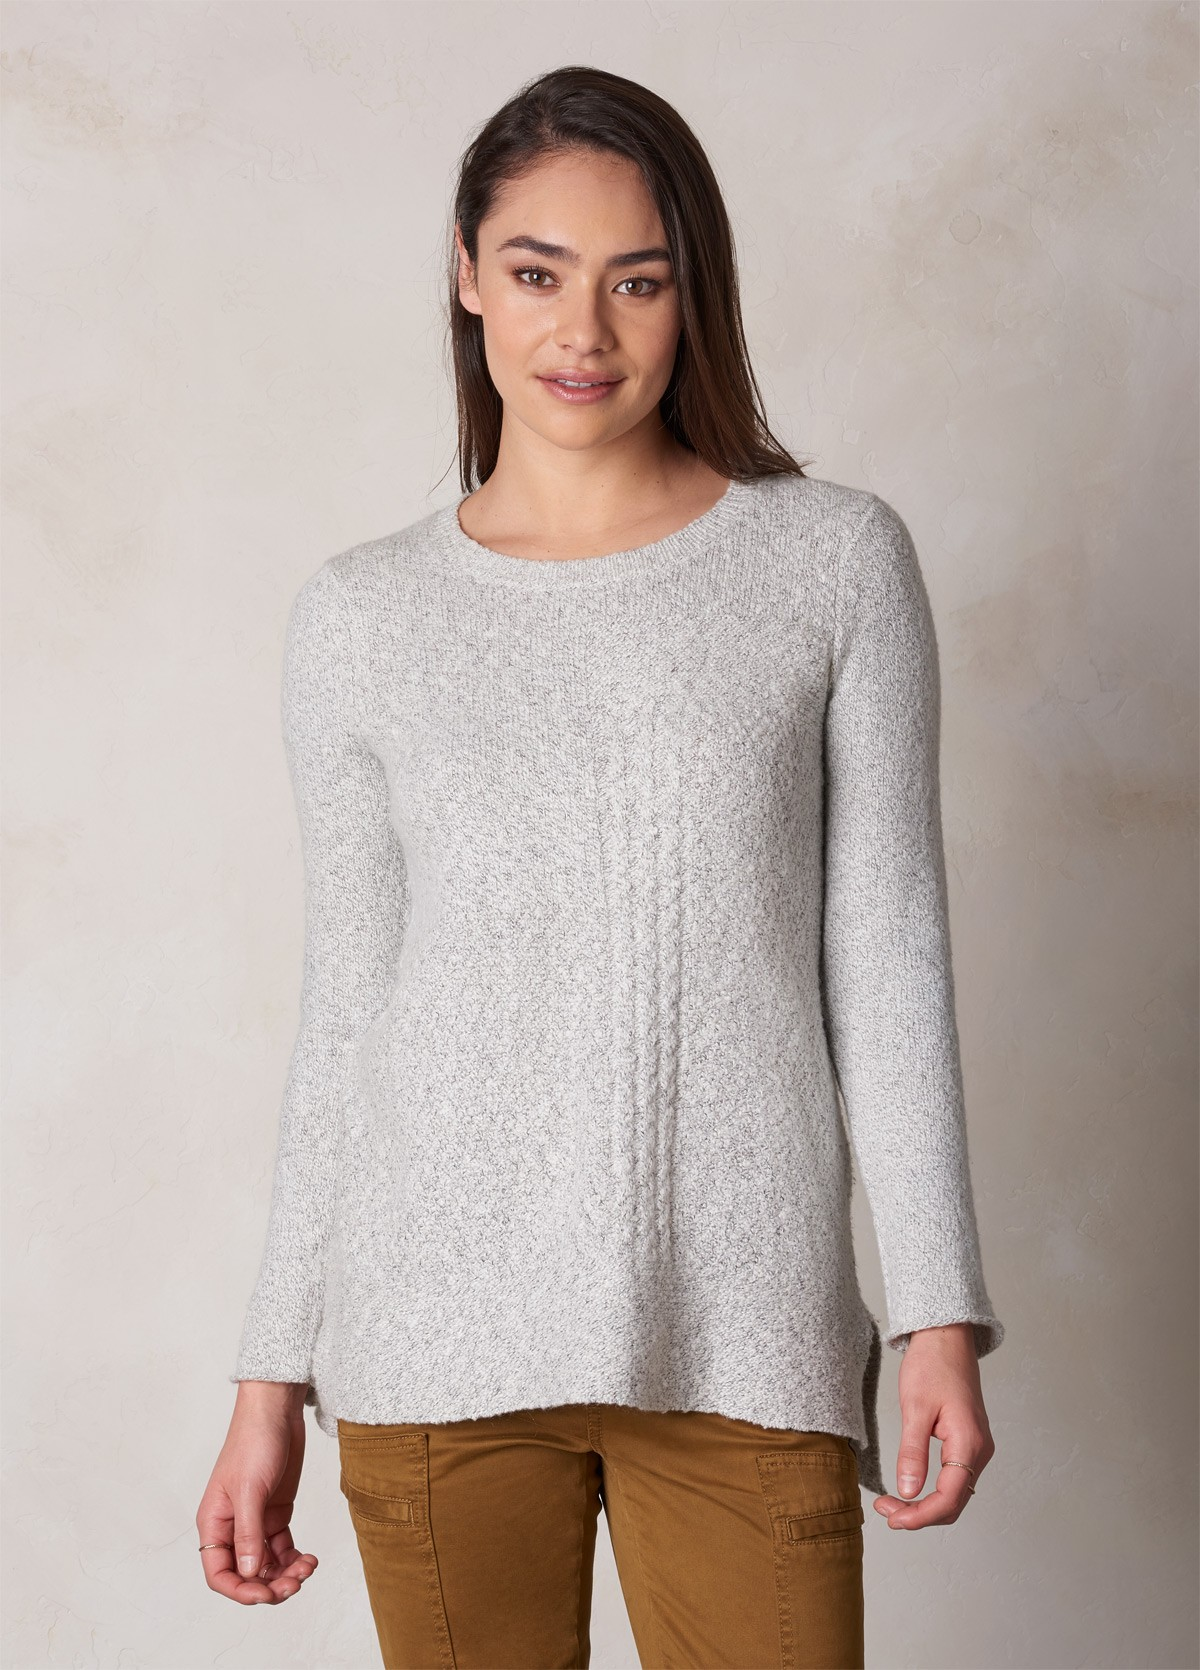 Purchase Tunic Sweater for you this winter